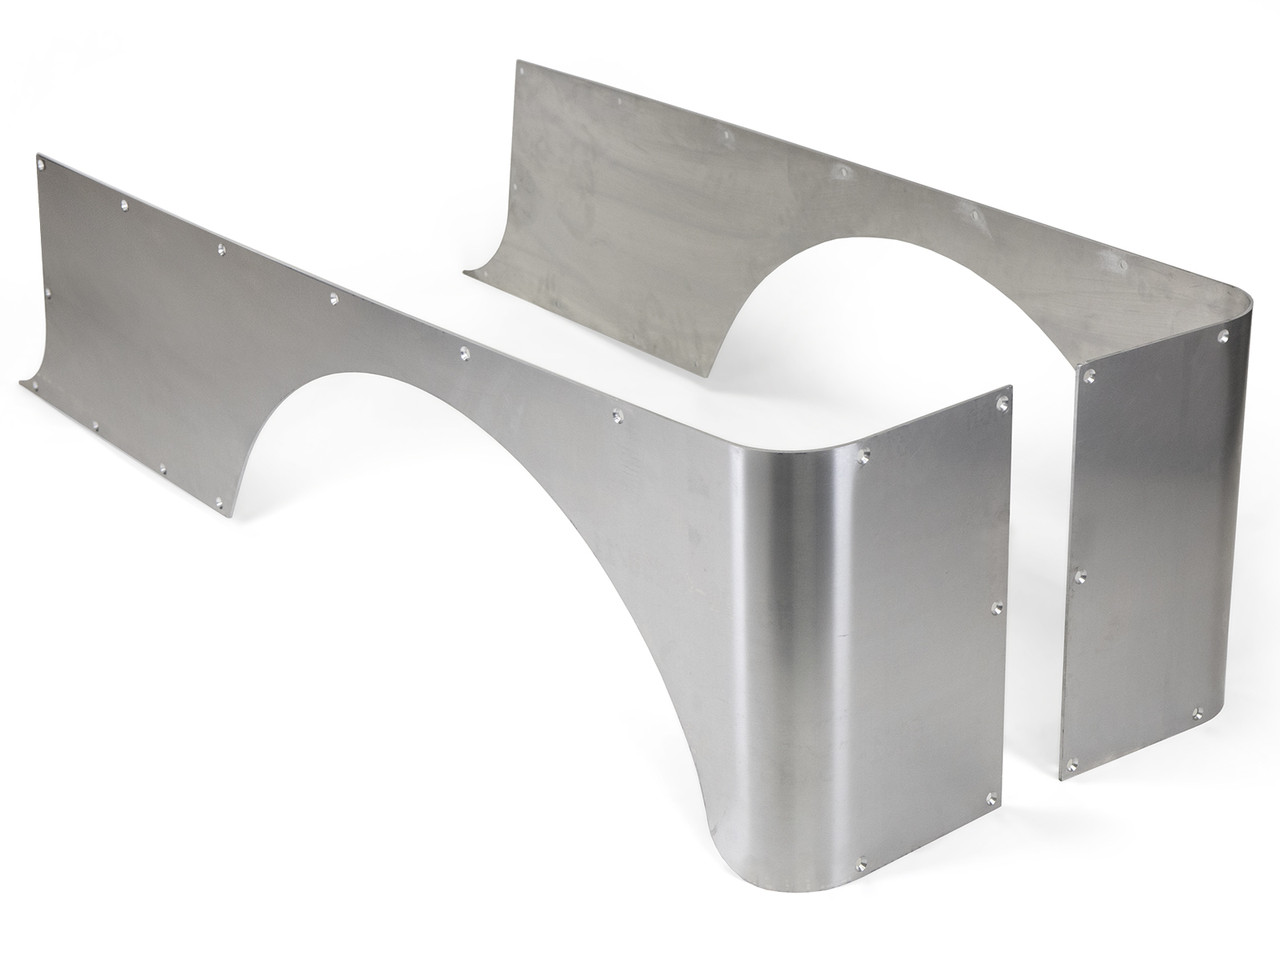 Jeep LJ Tracer Stretch Corner Guard Set - Aluminum